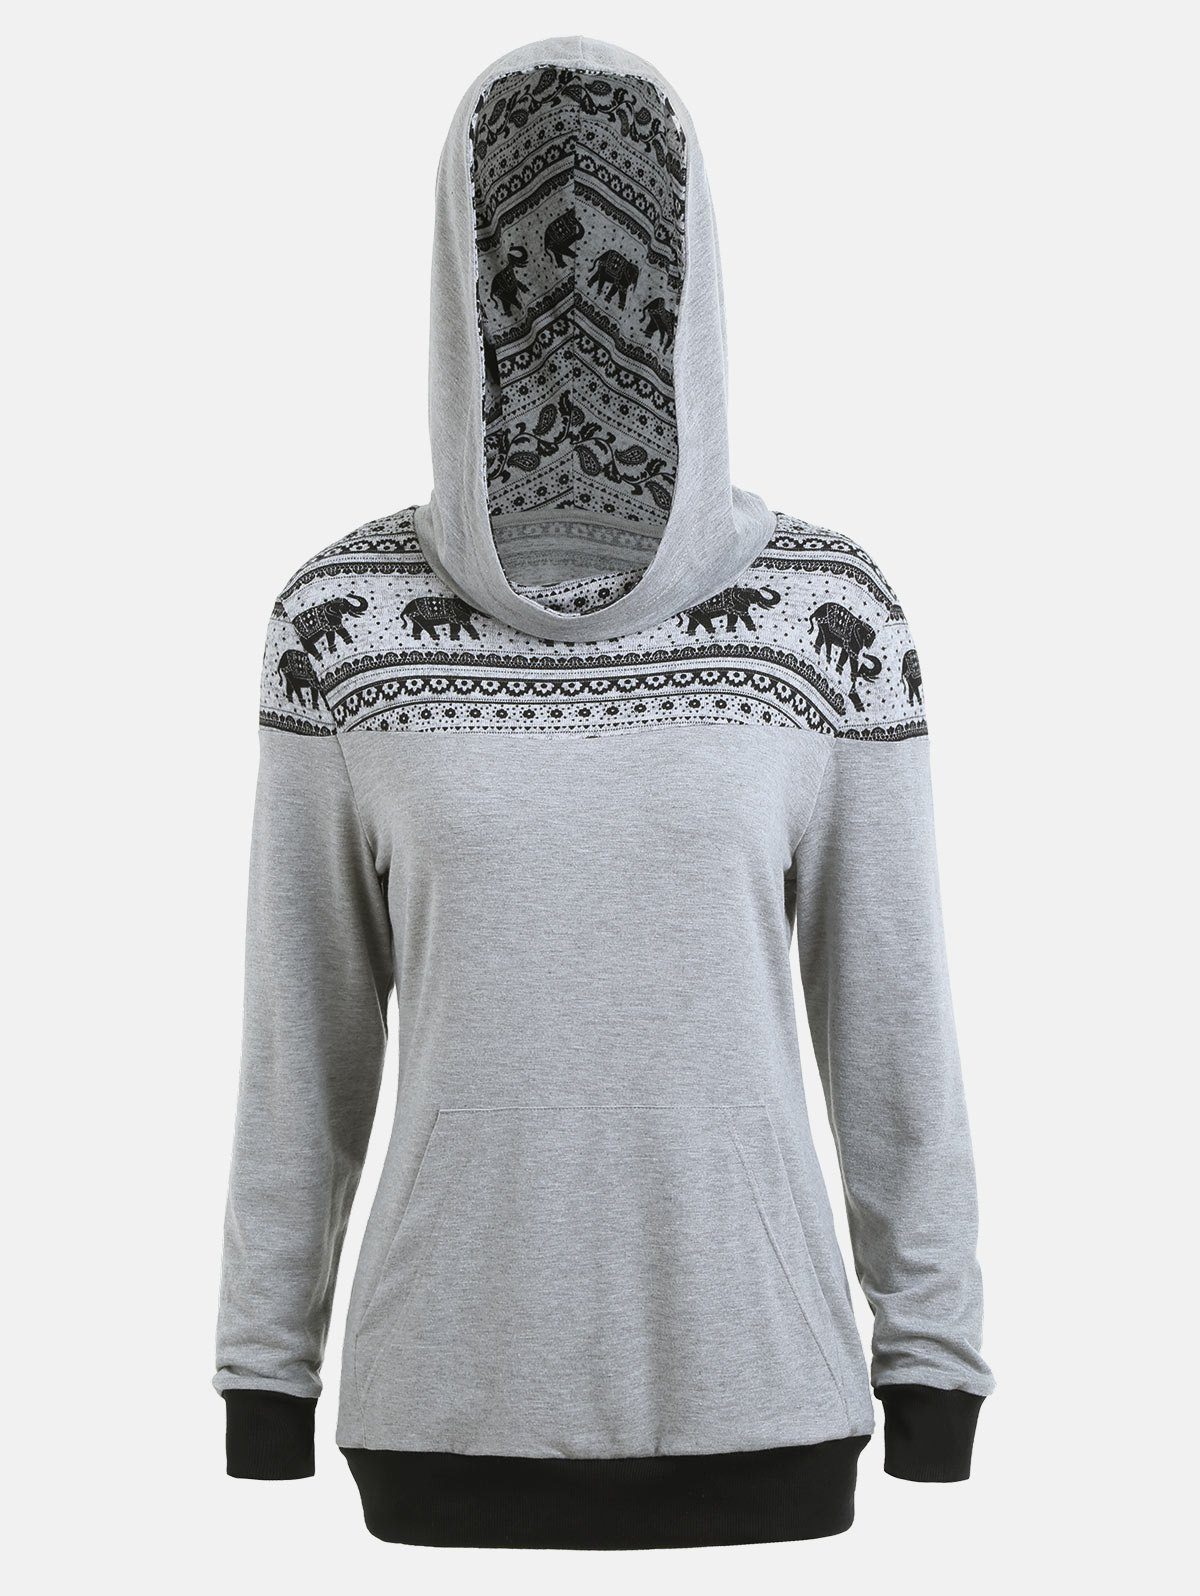 Kangaroo Hoodie with Ethnic Elephant Print - GRAY XL